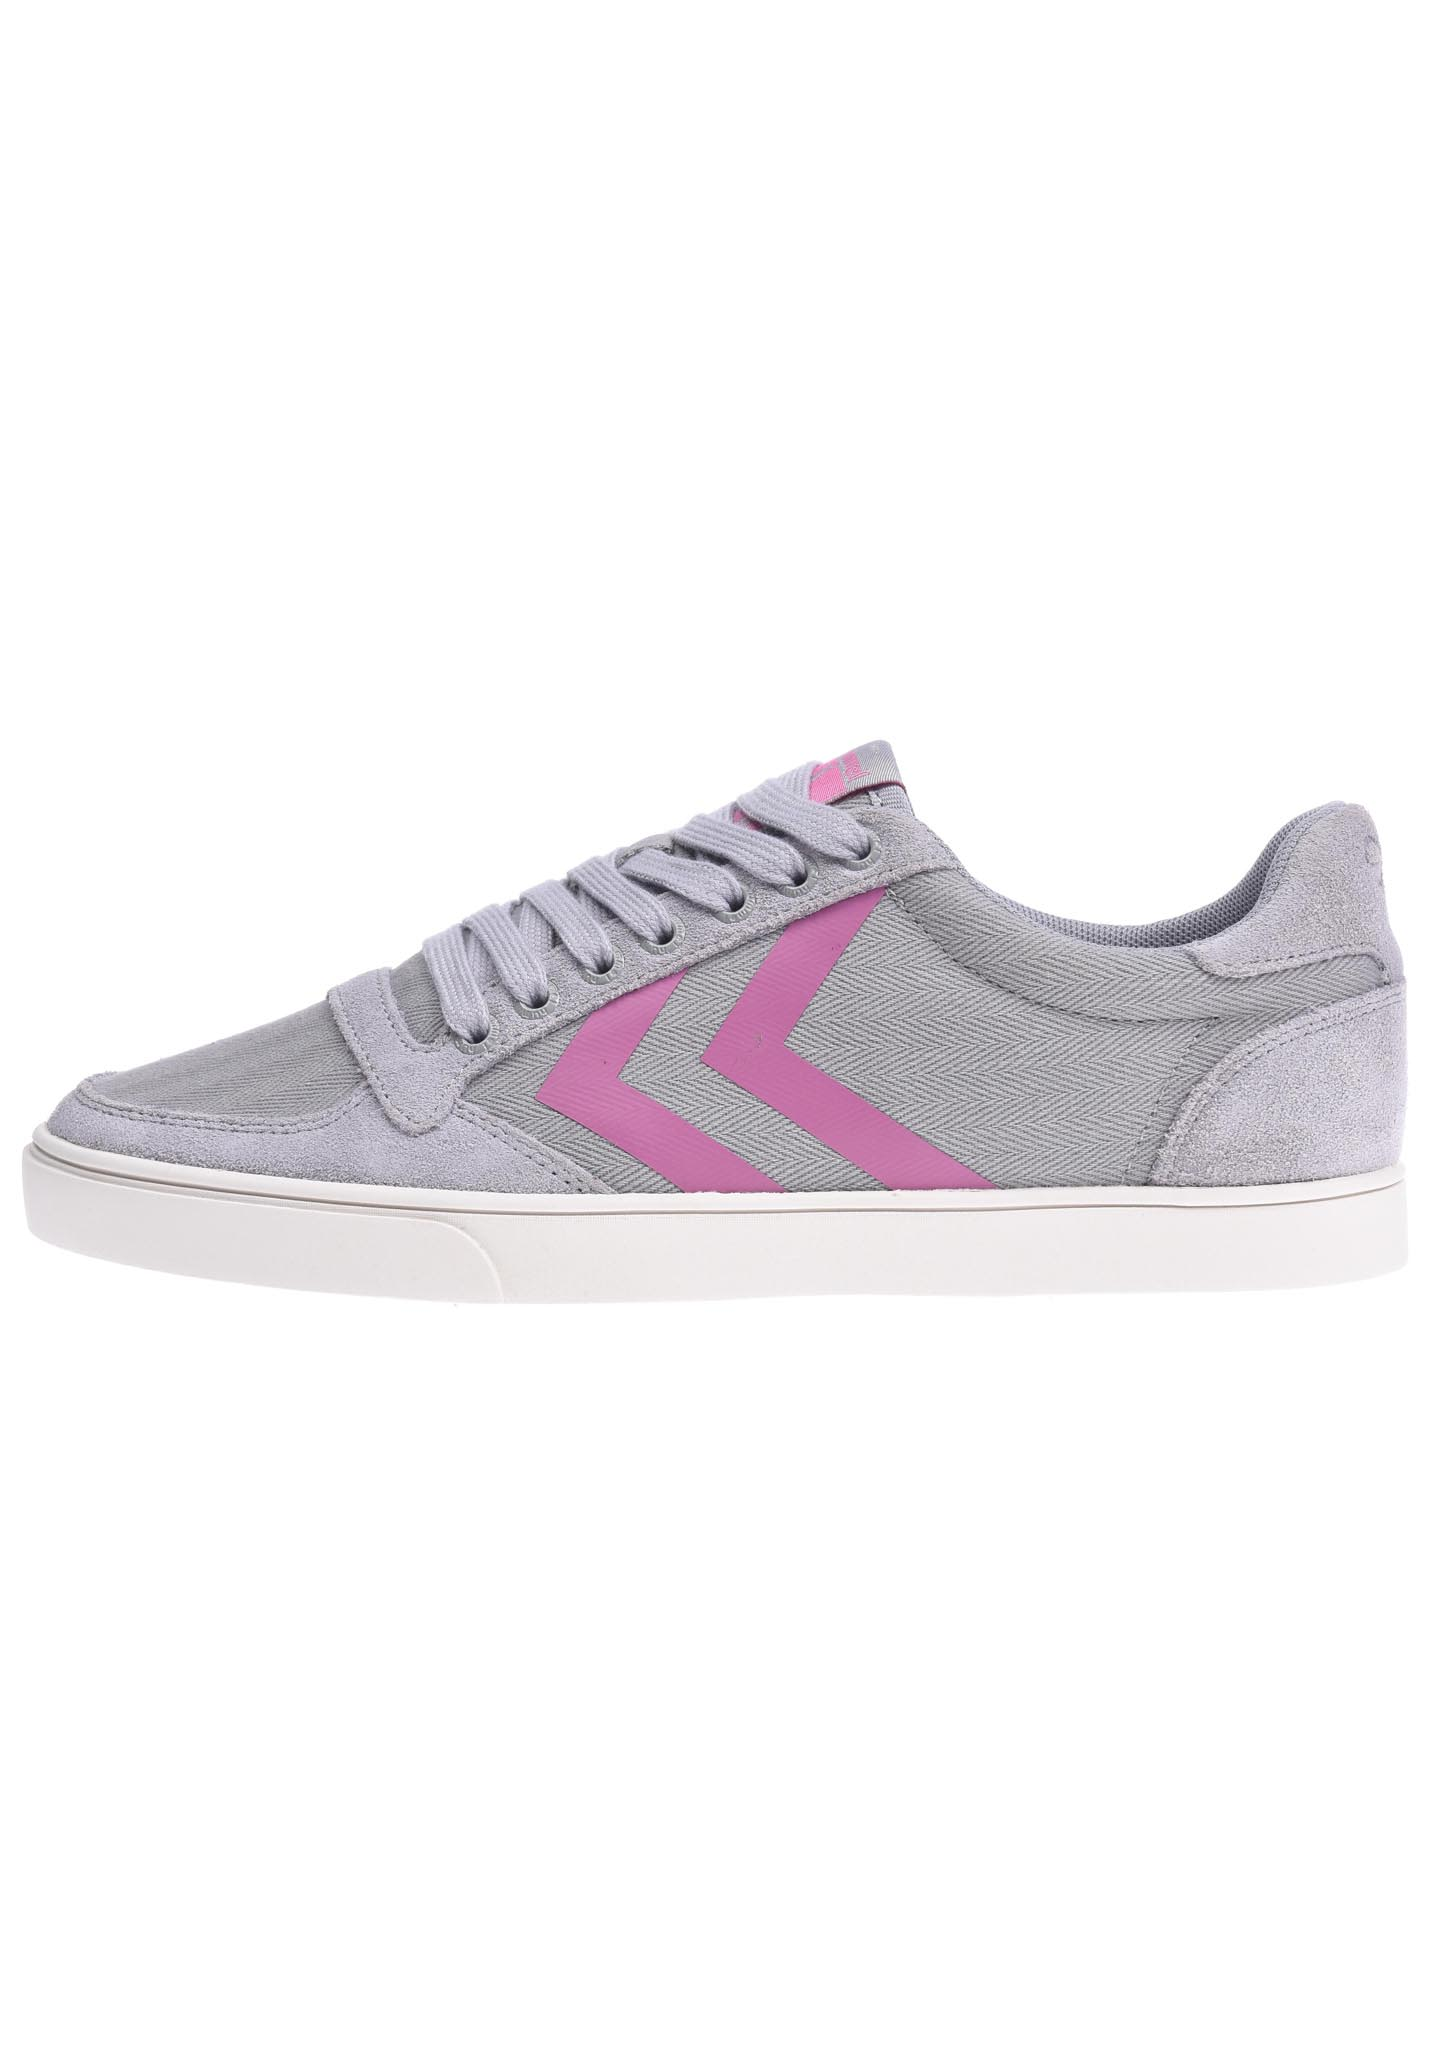 Womens Slimmer Stadil Hb Low Trainers, Grey Hummel